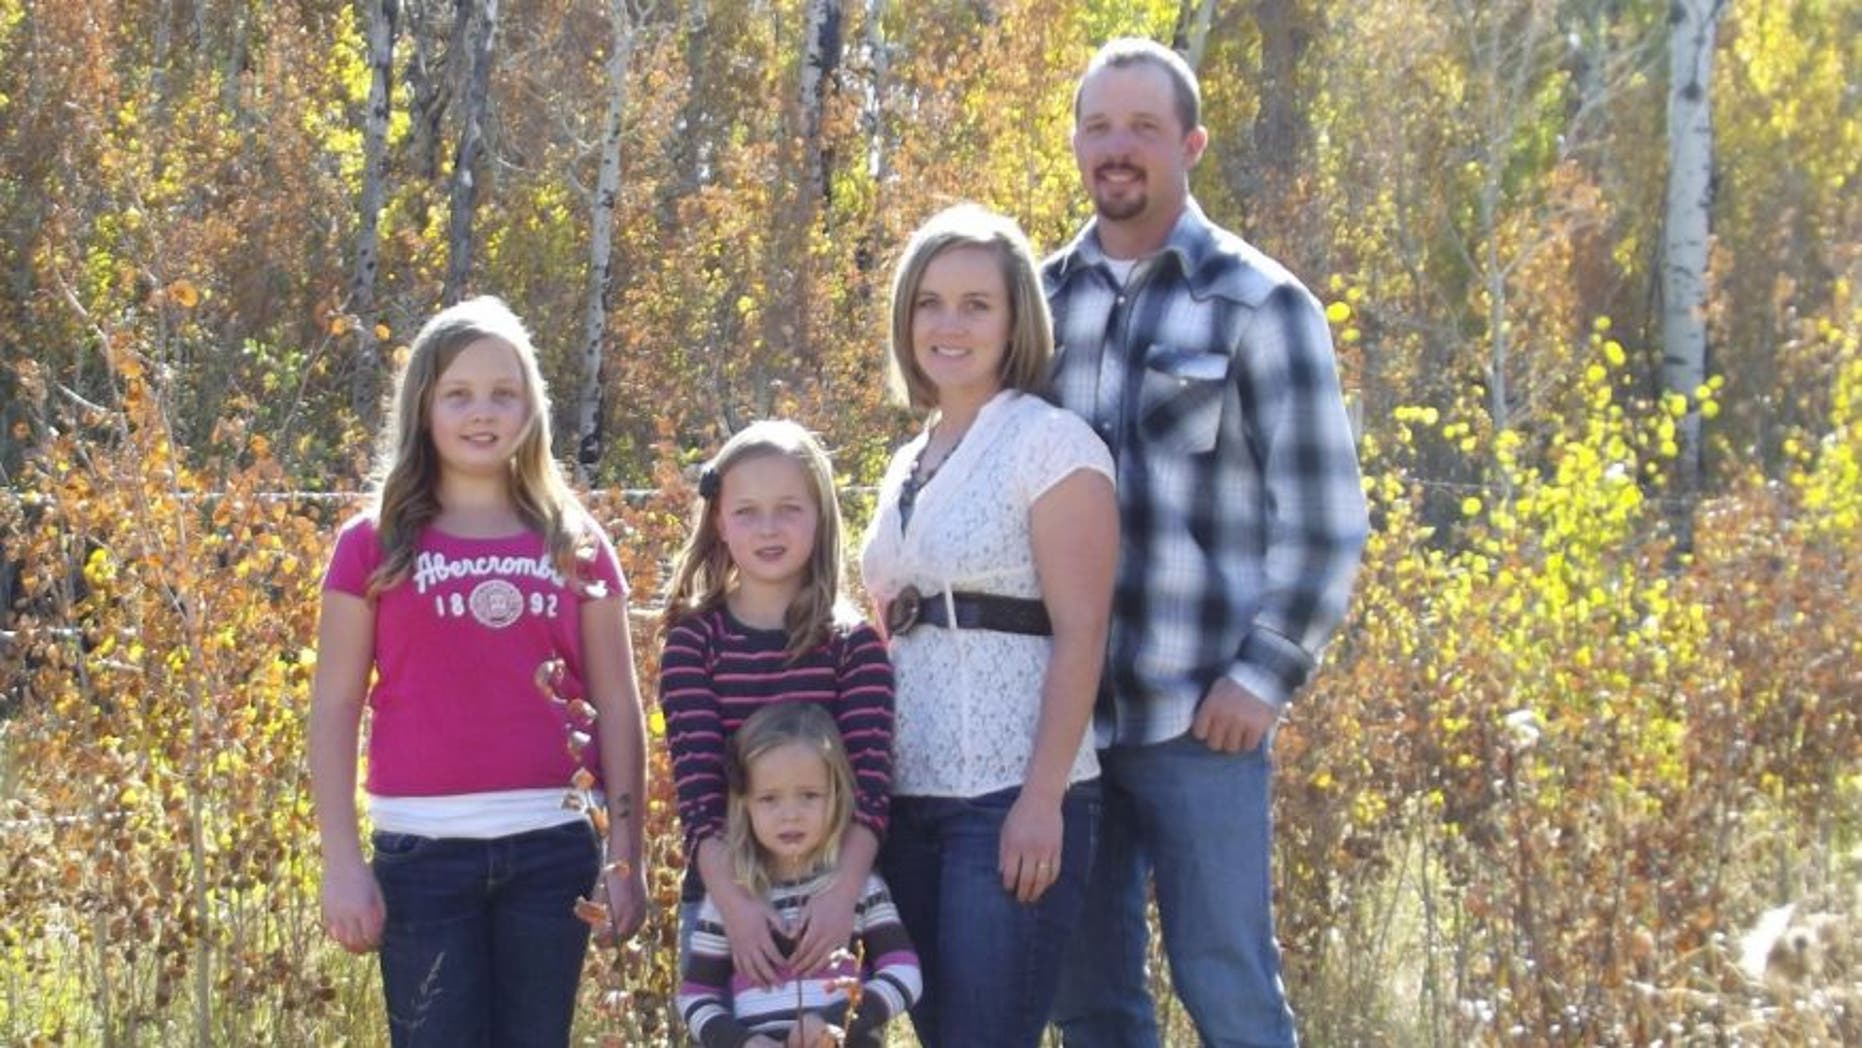 Andy Johnson, of Fort Bridger, Wy., is pictured in an undated photo with his wife and daughters.